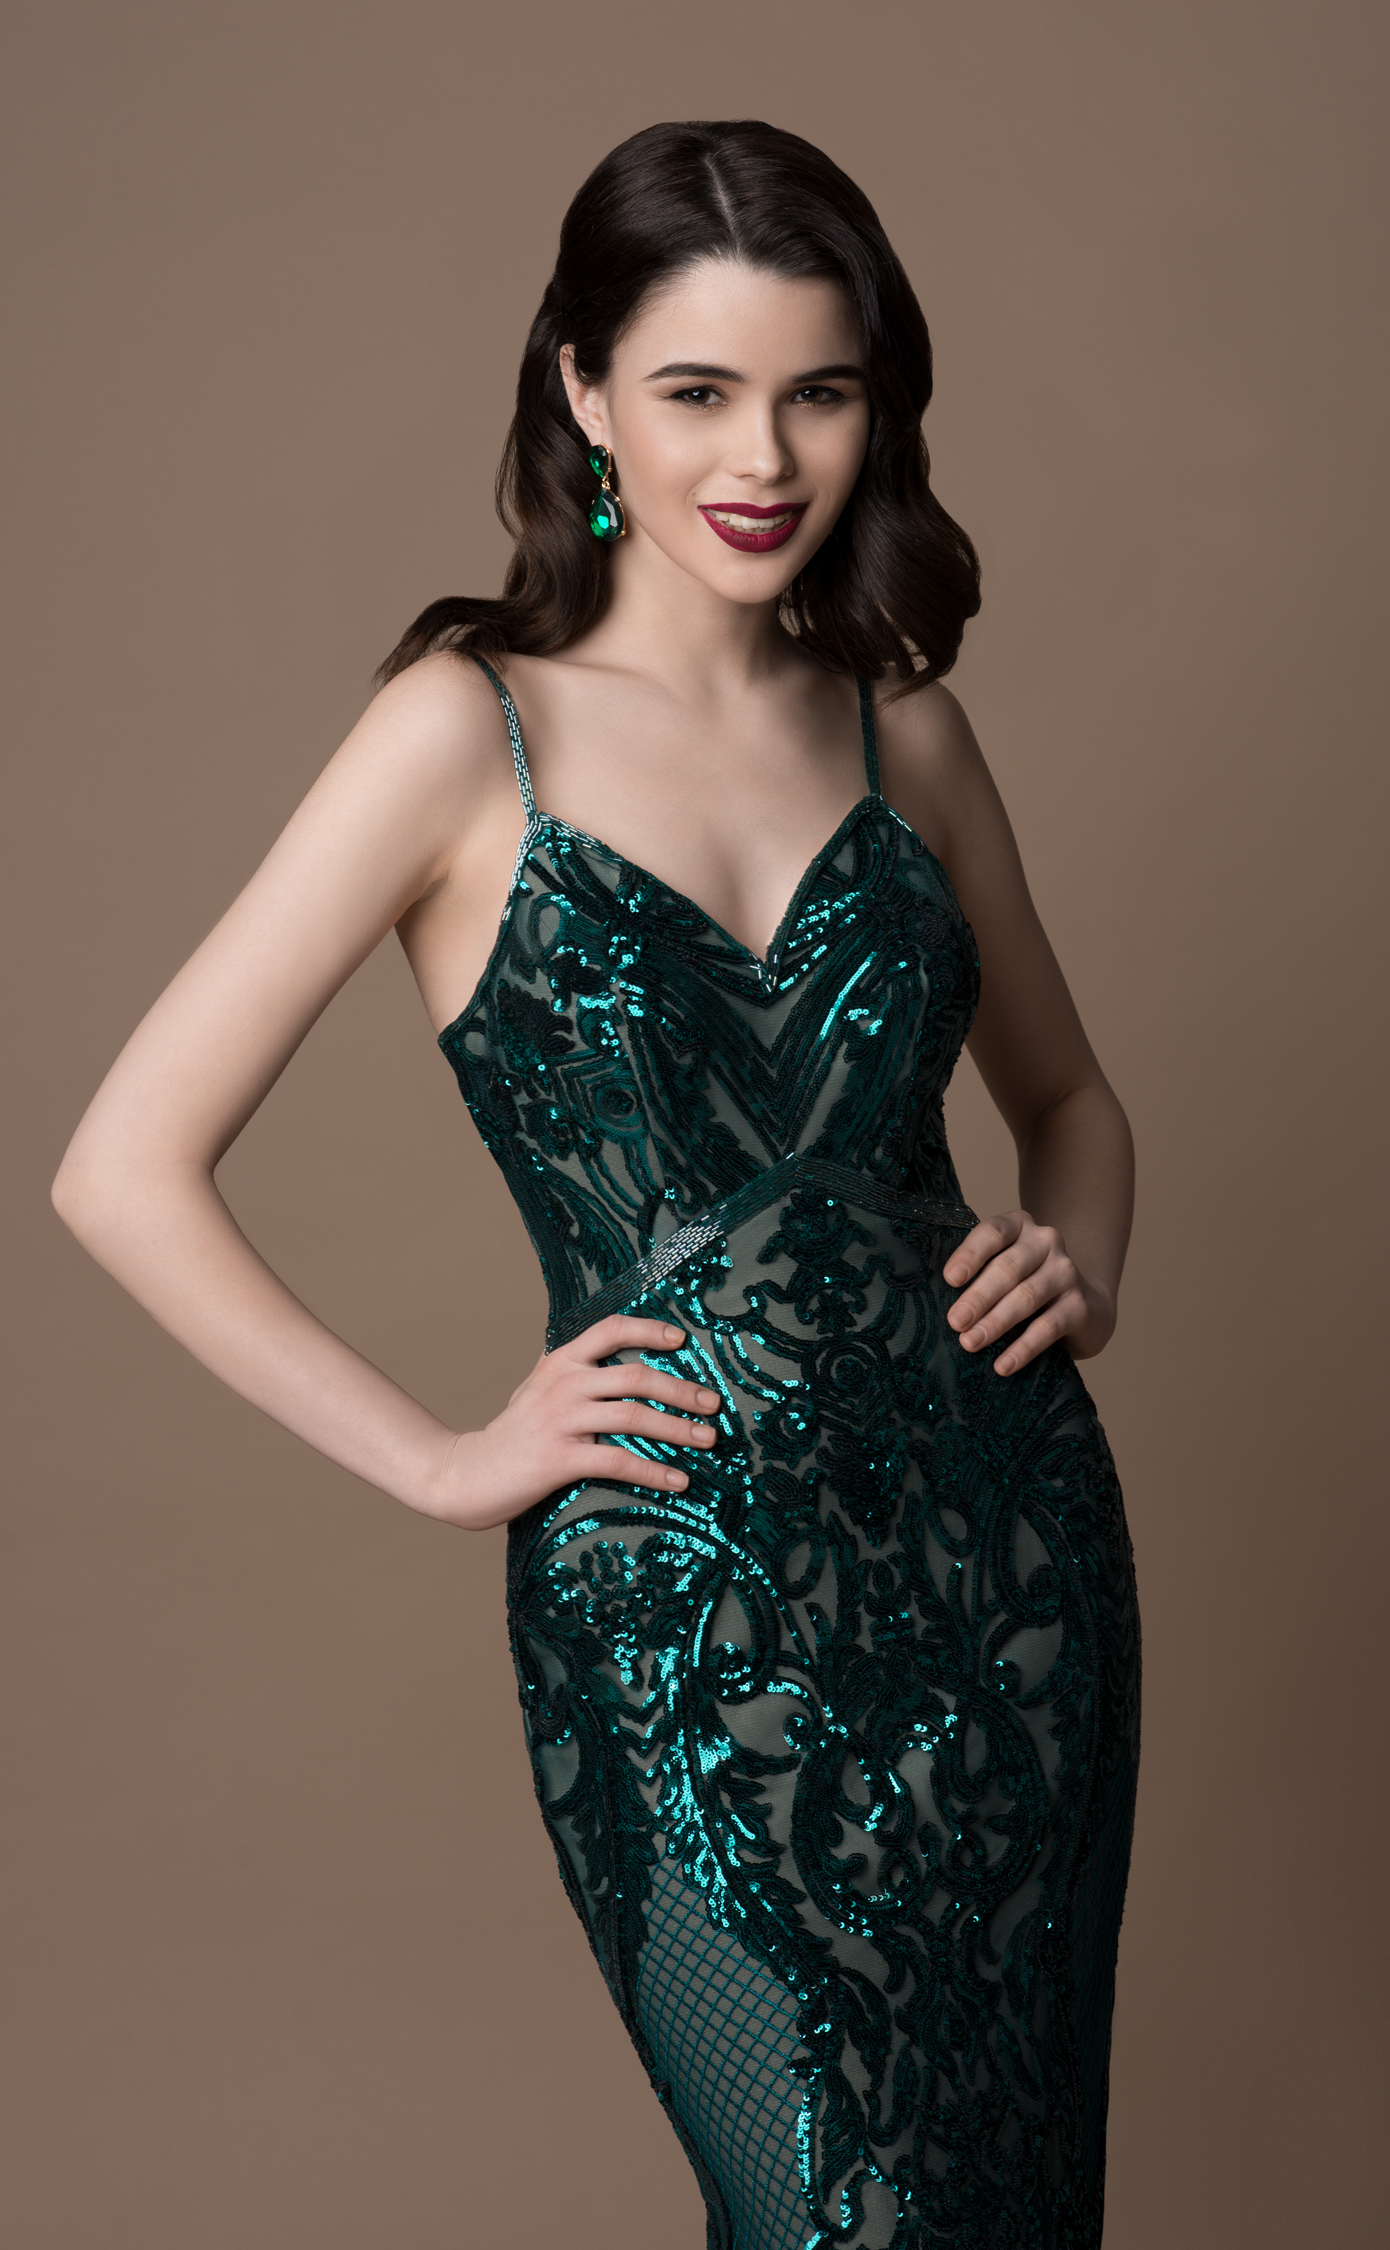 ab95f399383 Home / The Prom Gallery / Gino Cerruti / Gino Cerruti Long Sequin Prom or  Evening Dress – 1799B Midnight Blue